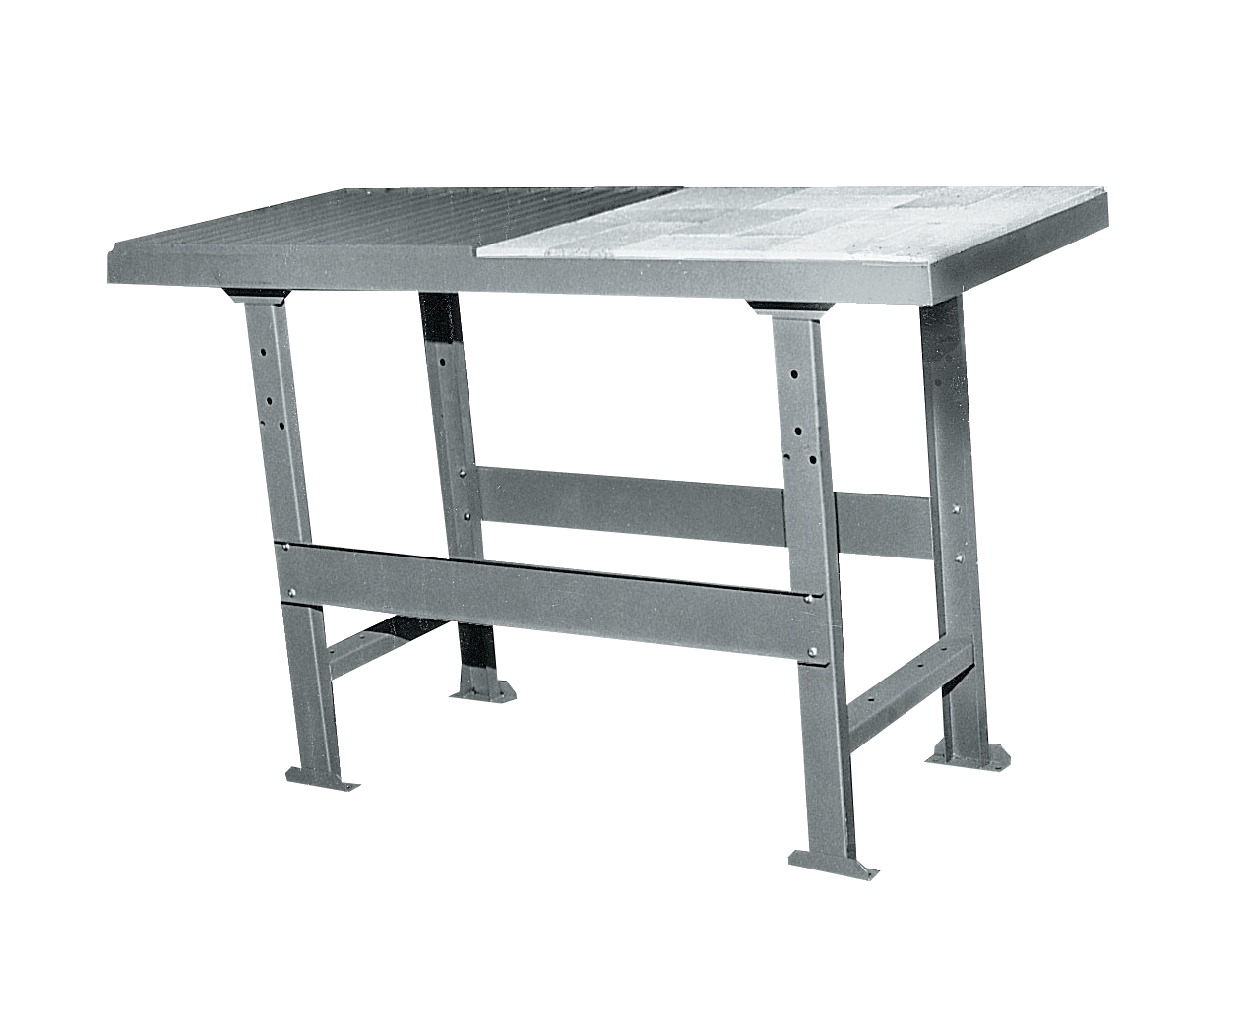 Gas and arc welding table school specialty marketplace for 12 in 1 combination table